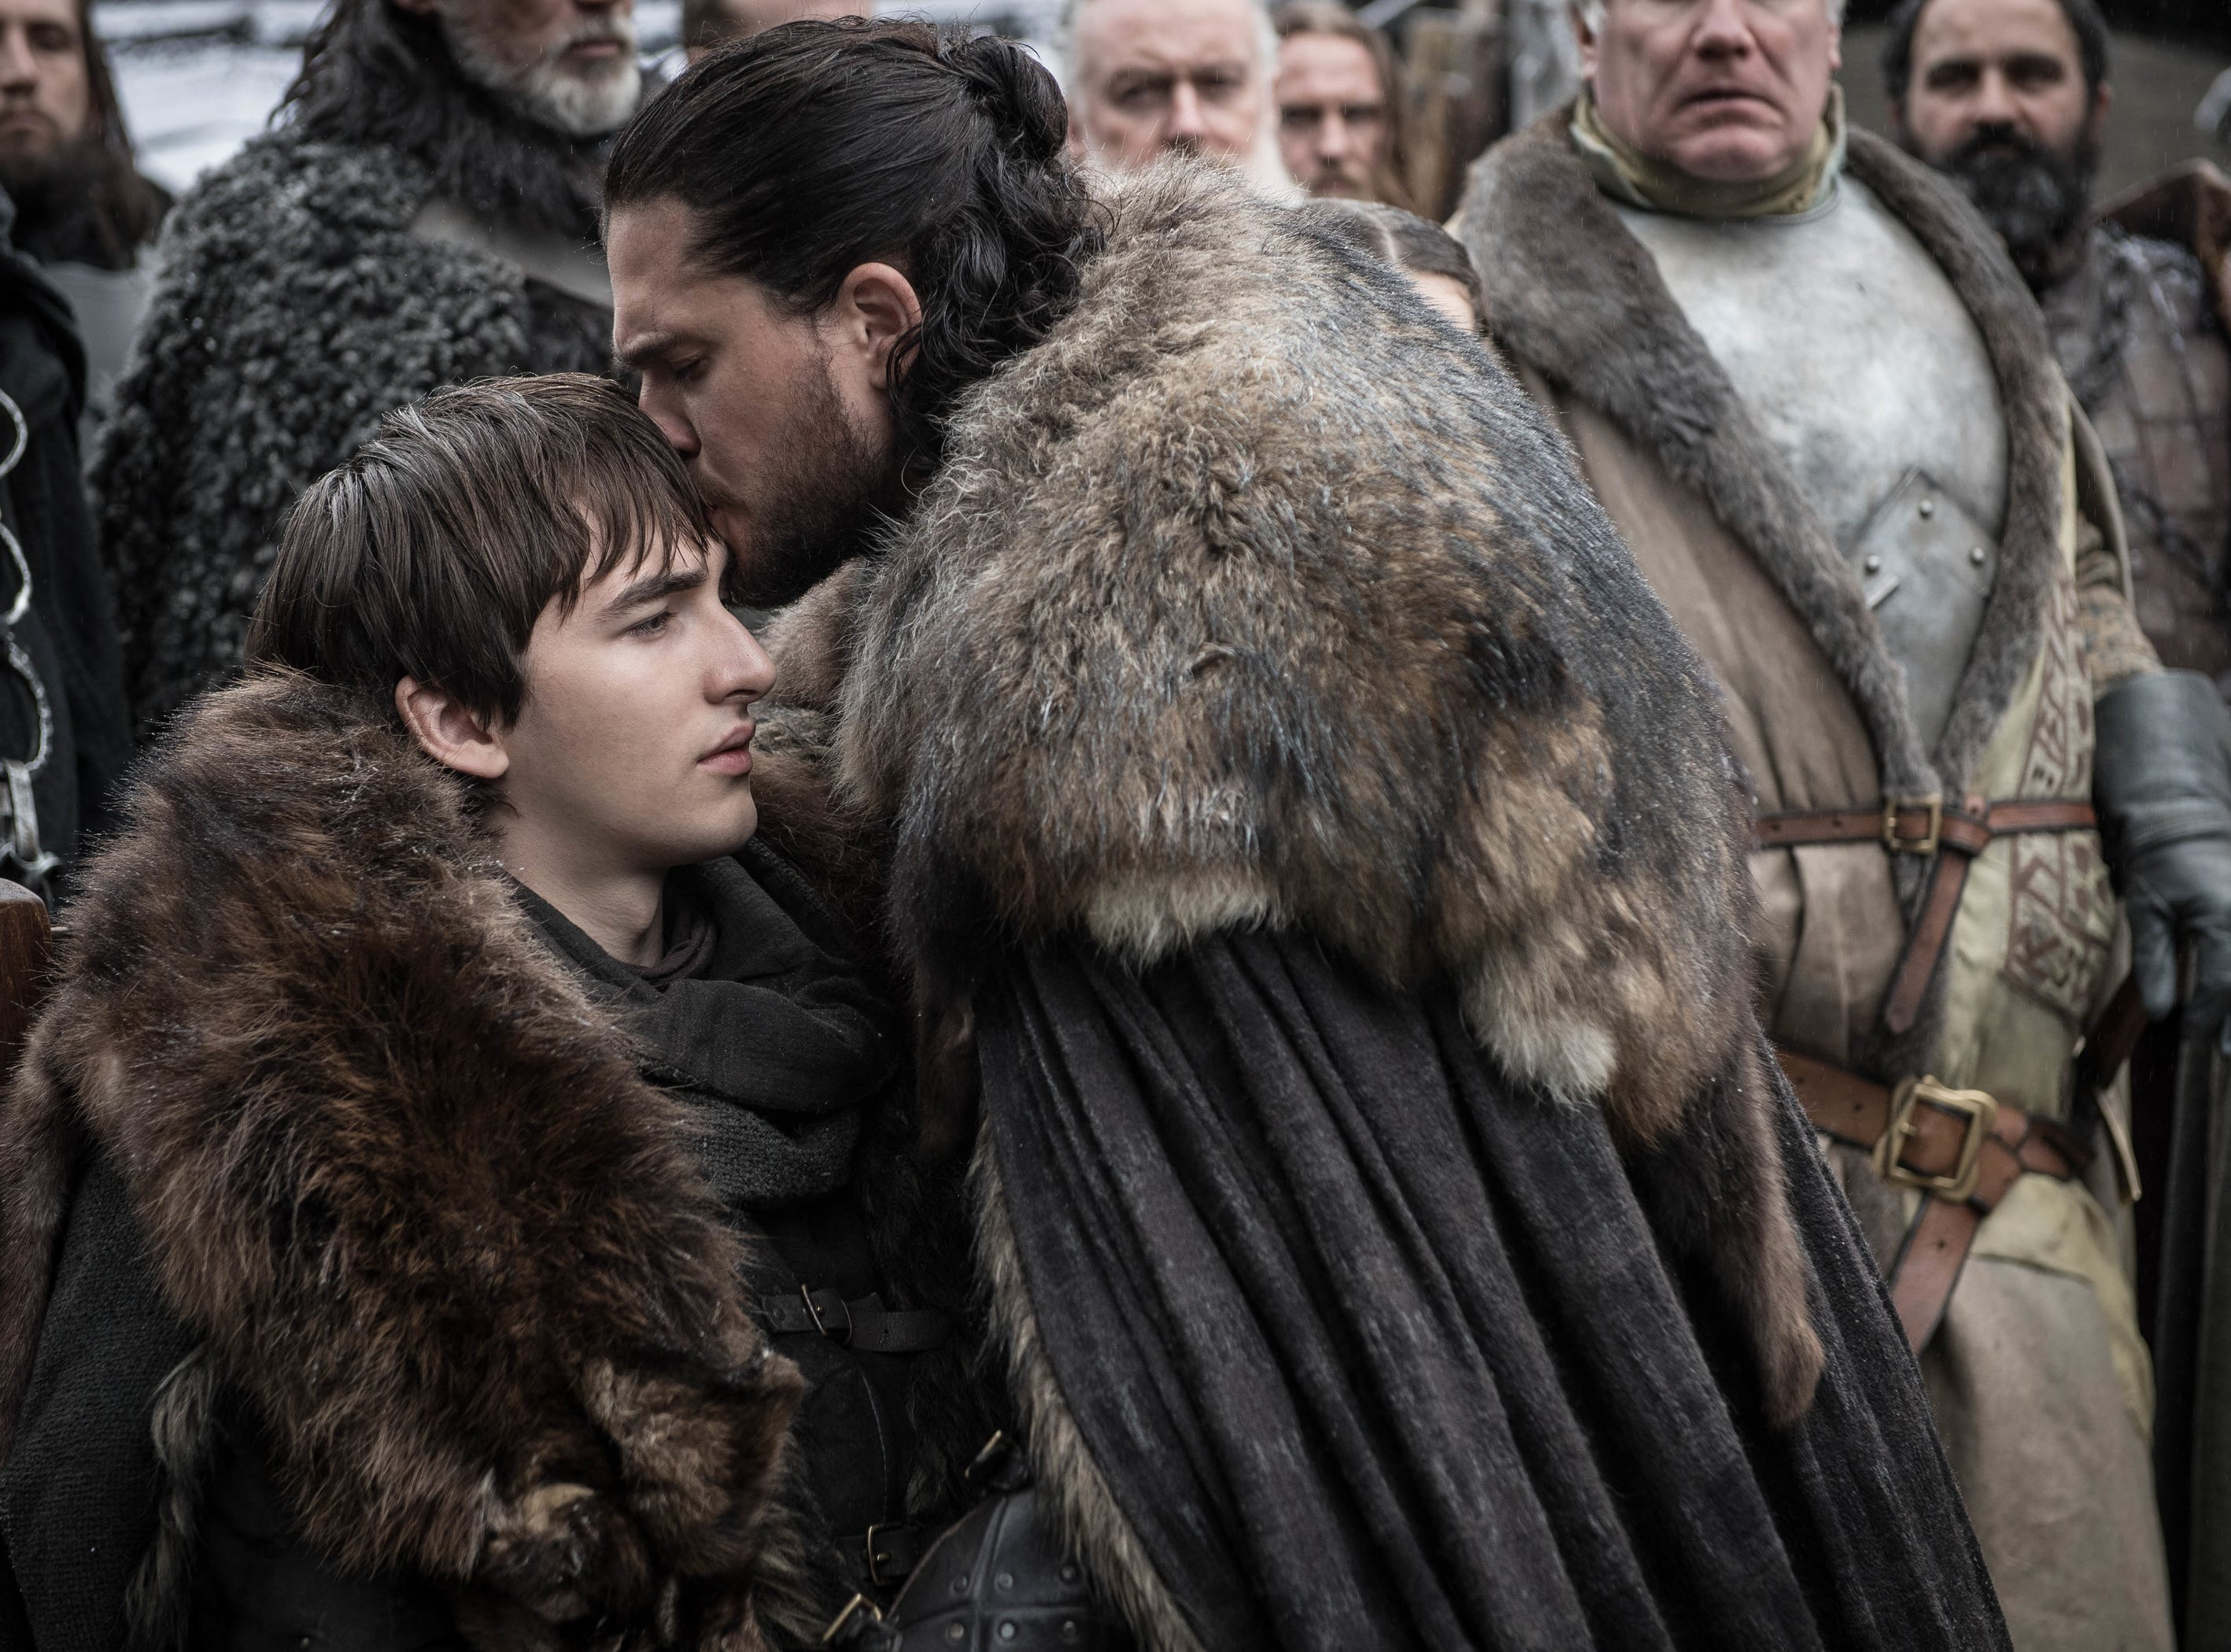 Jon Snow (Kit Harington) is reunited with Bran Stark (Isaac Hempstead Wright).